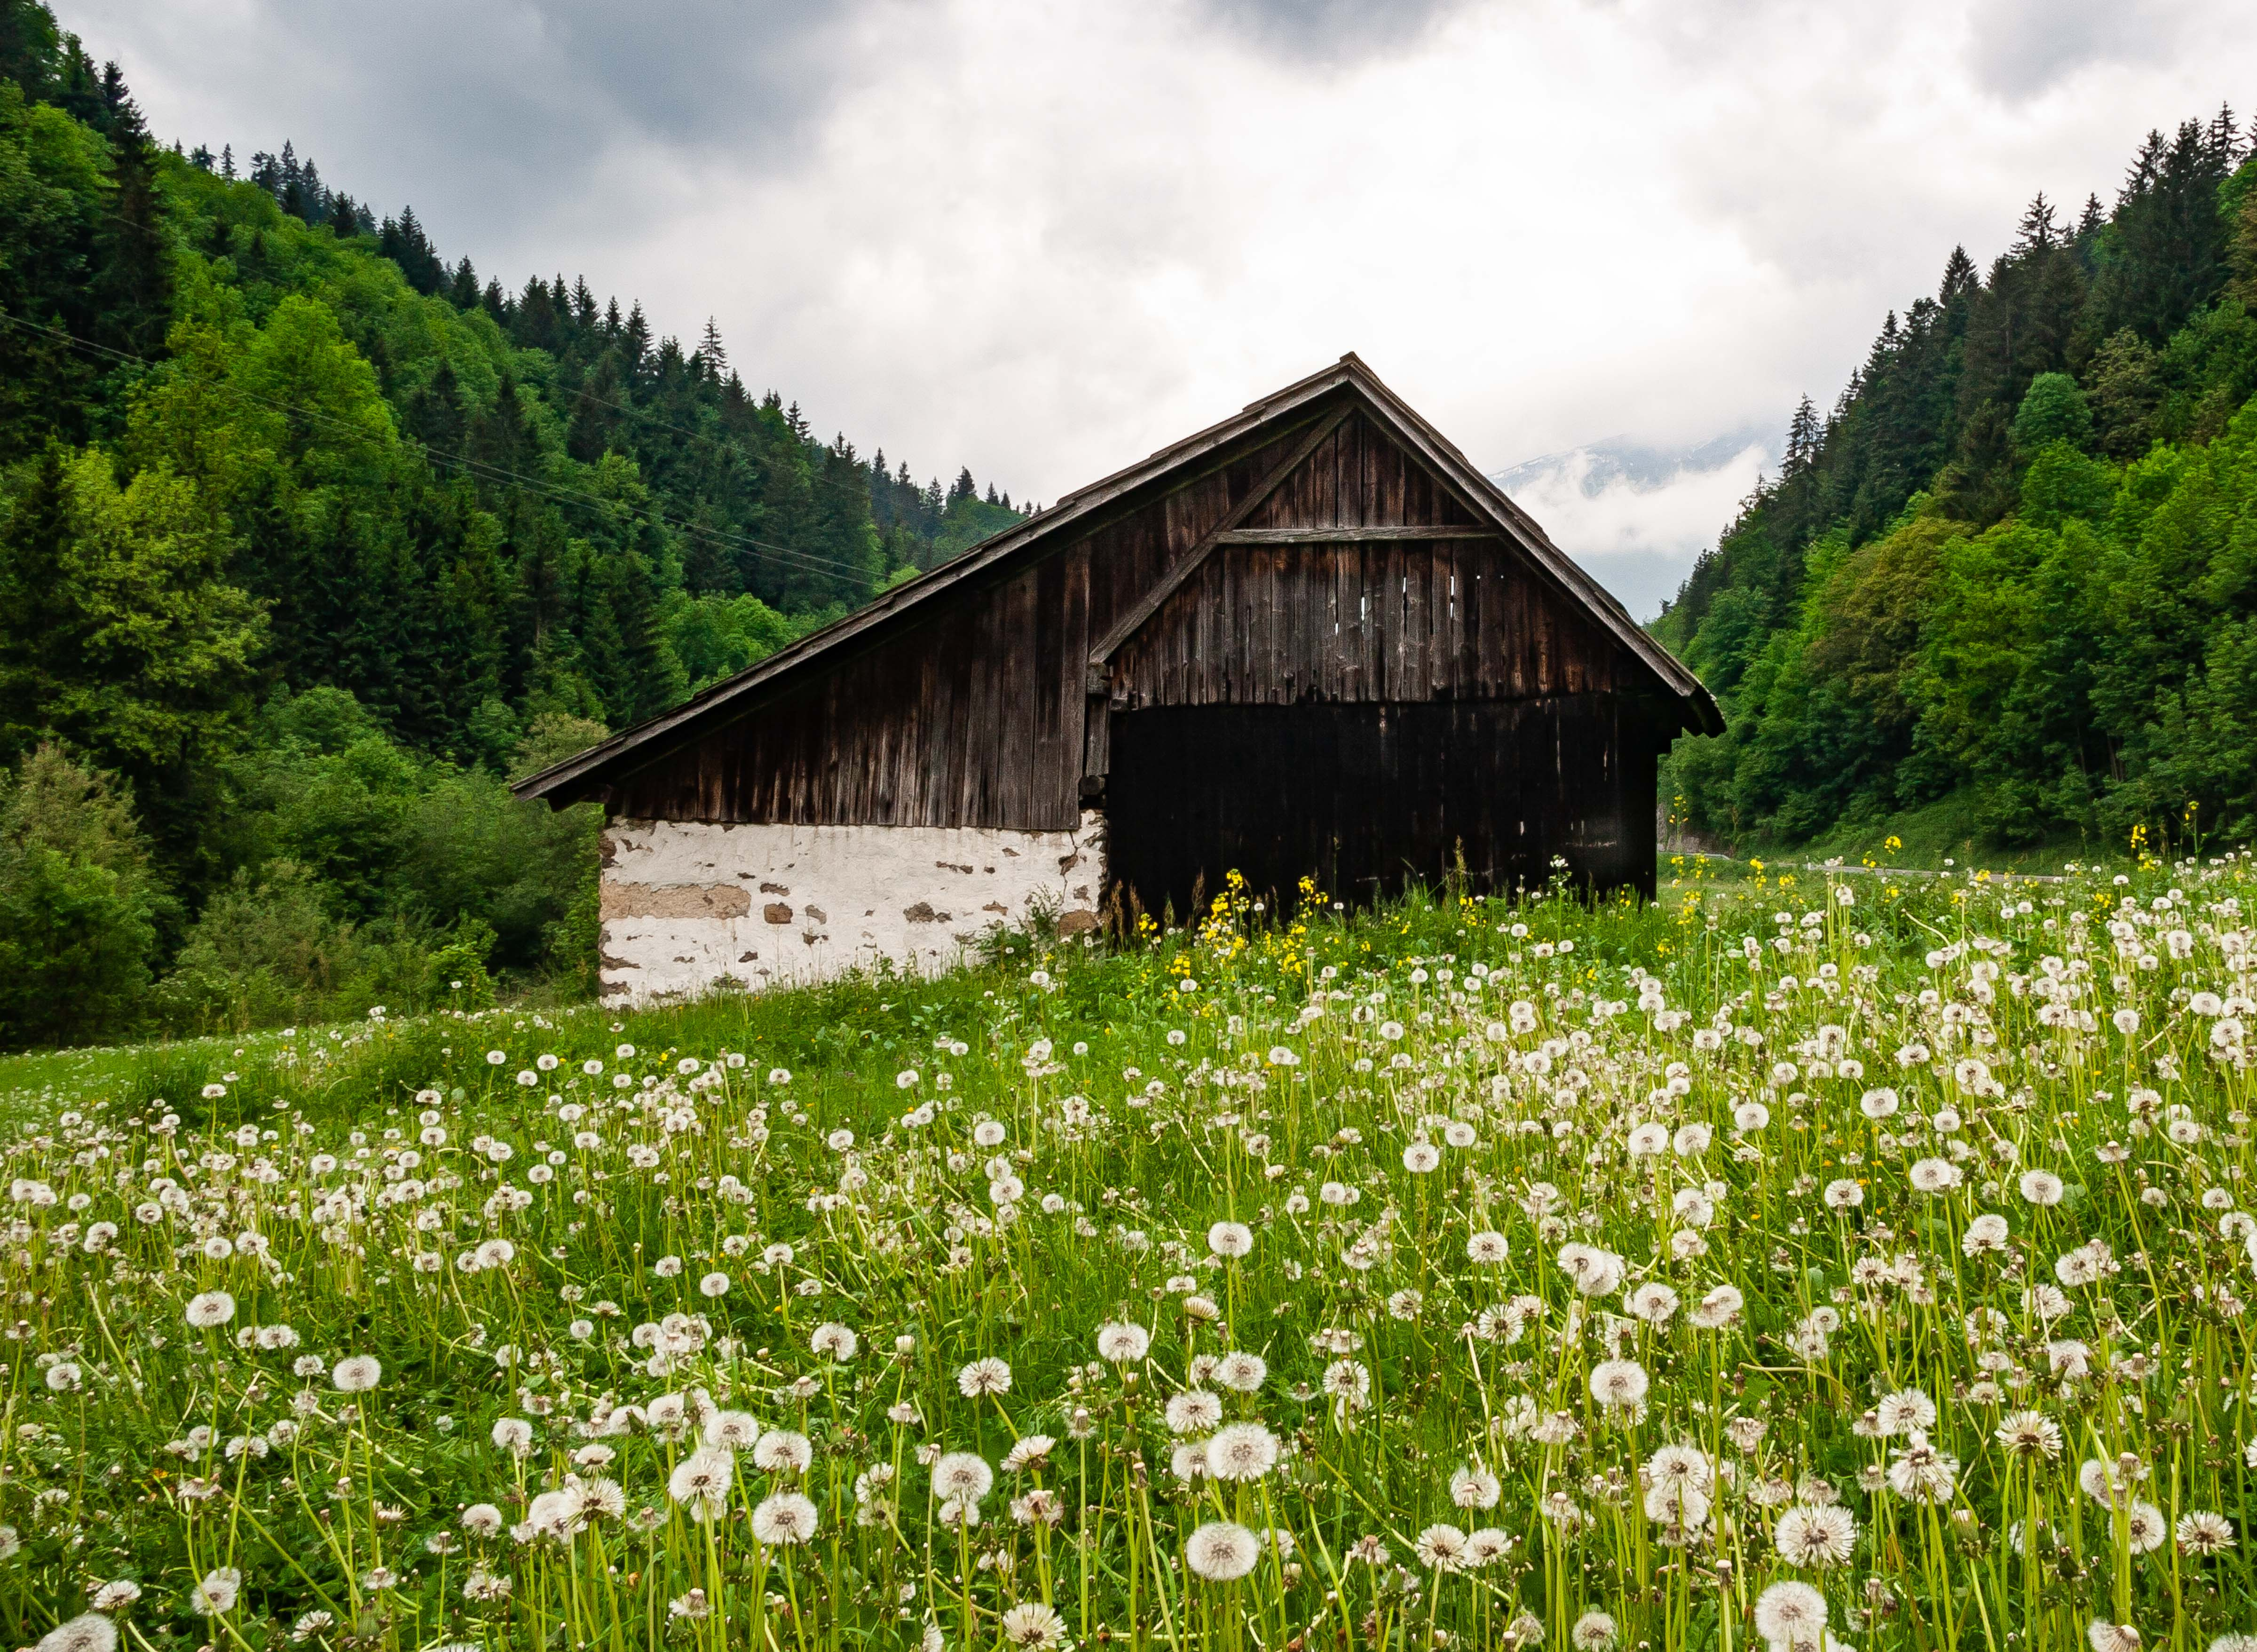 Slovenia, Luce Prov, Blow Brush Field And Old Building, 2006, IMG 8362